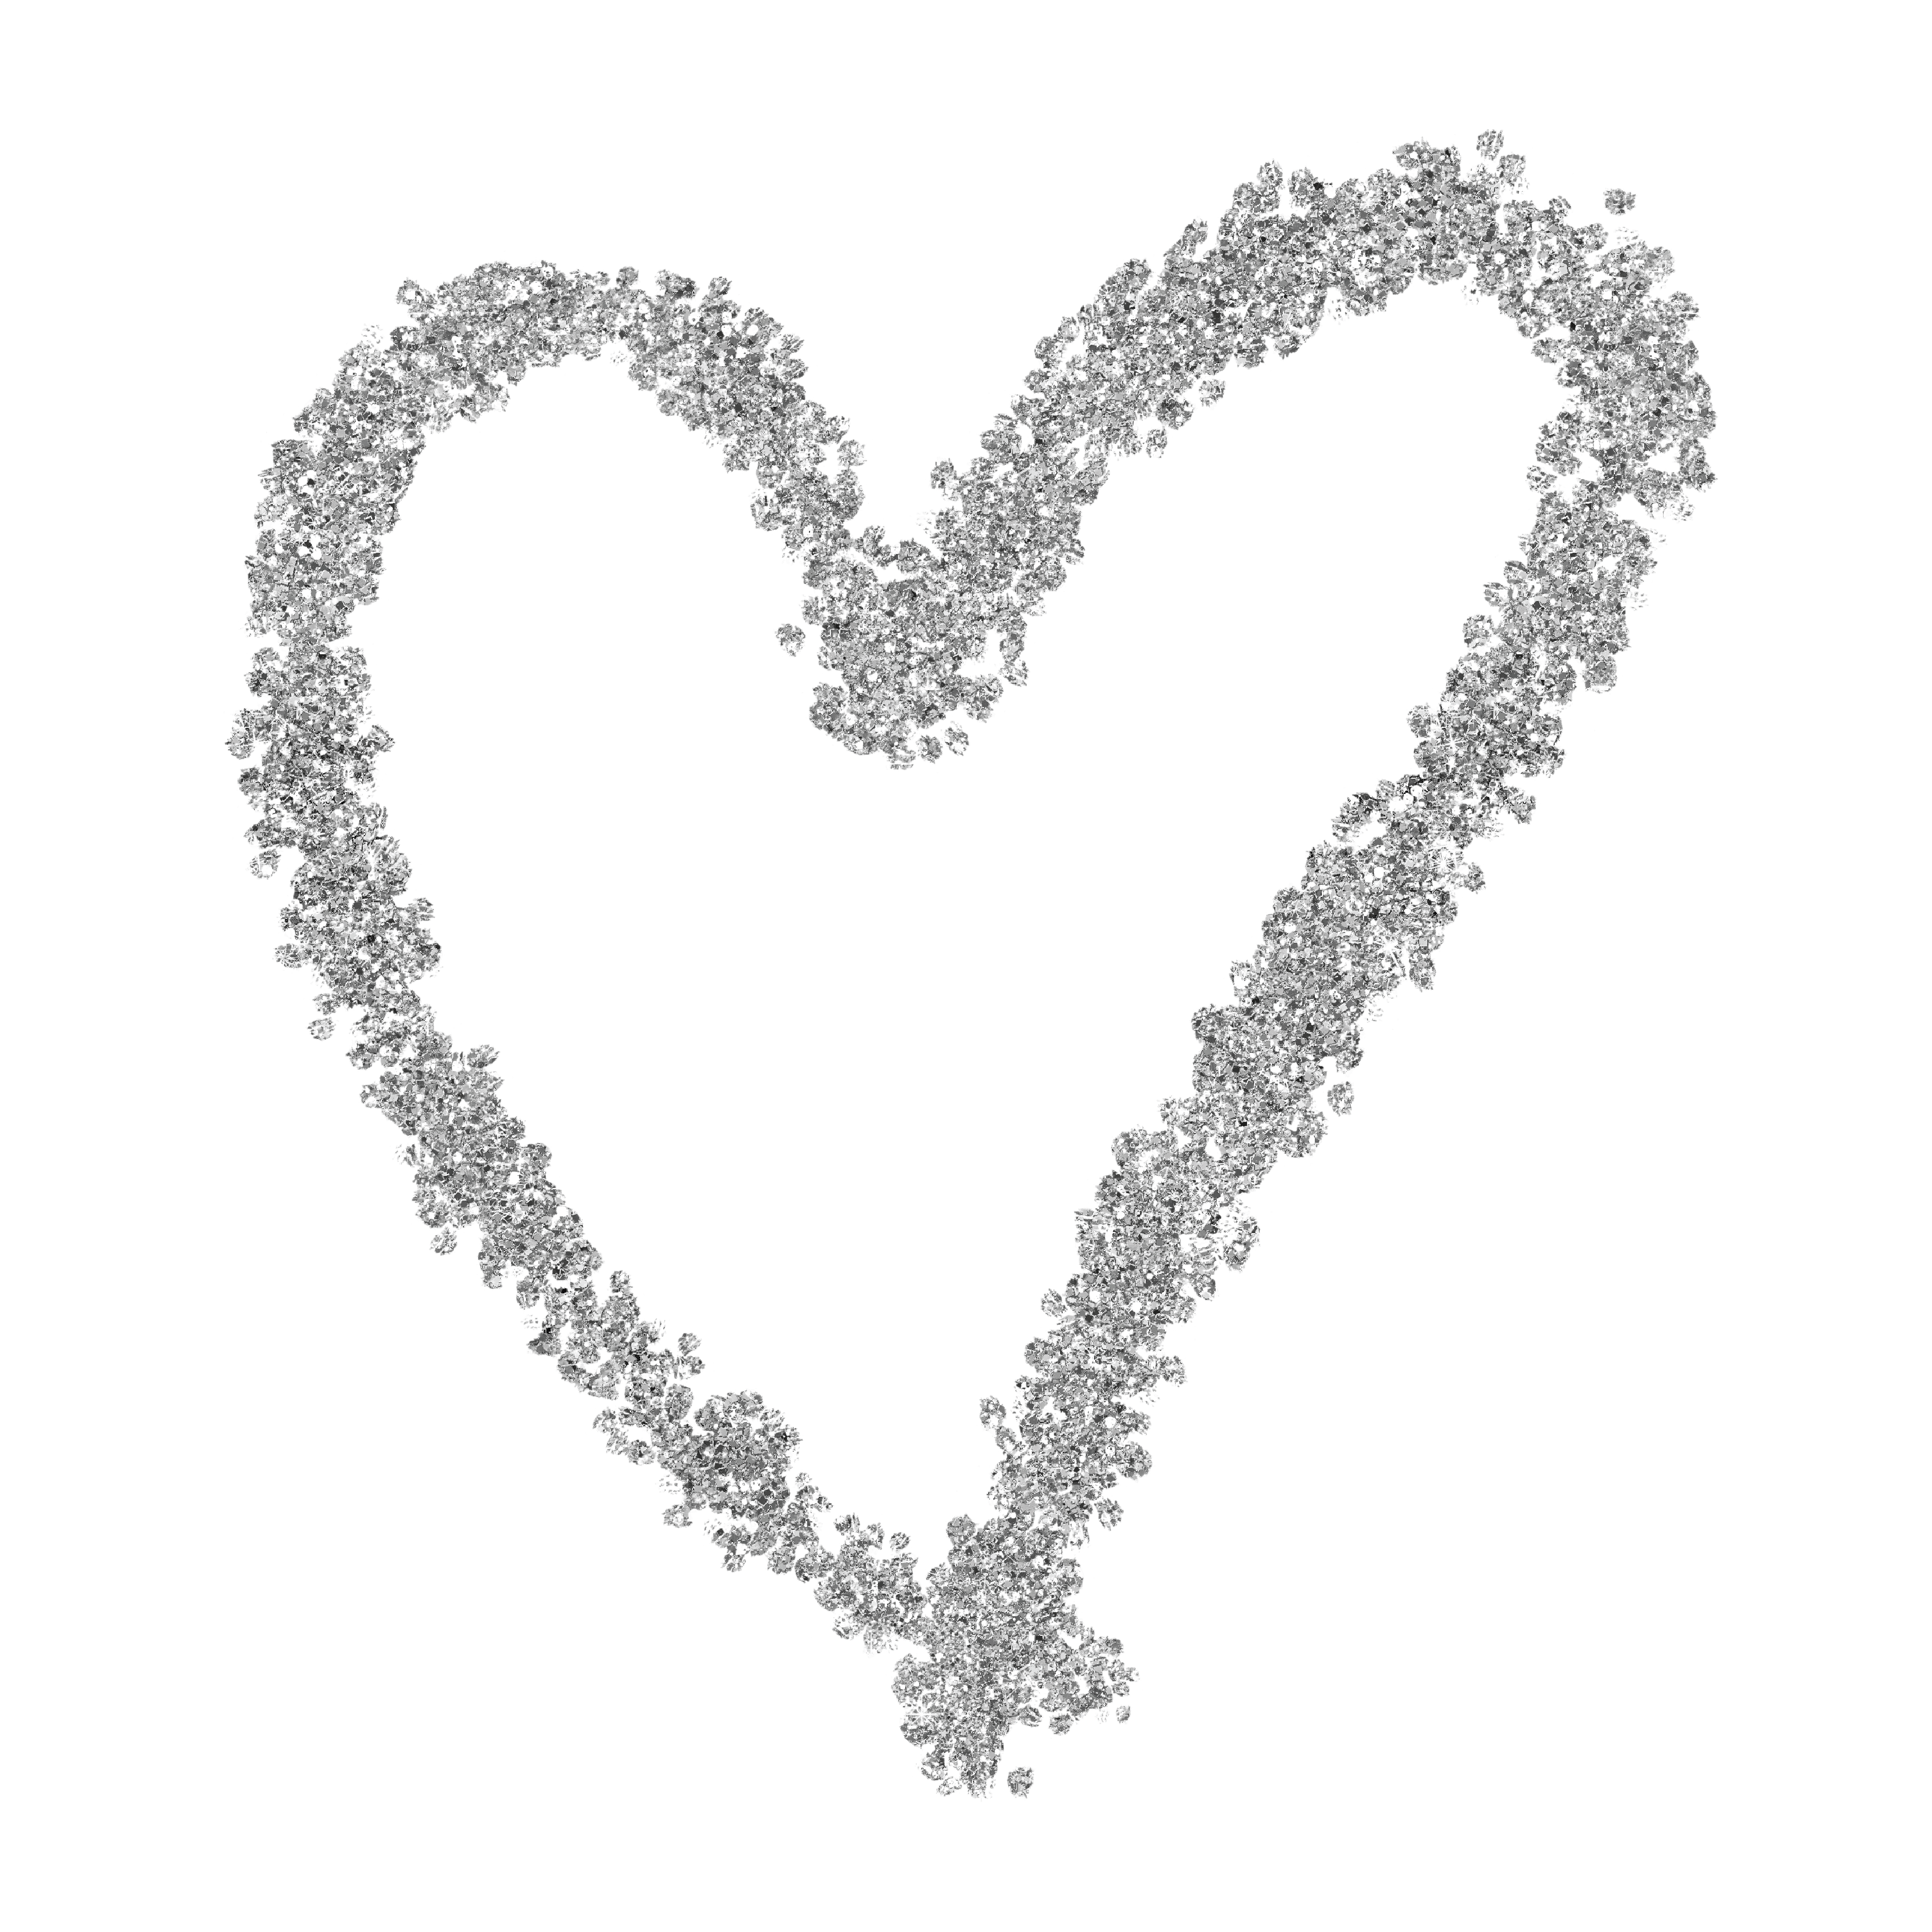 Silver Glitter Heart Web Flair Graphic Graphic Brewery